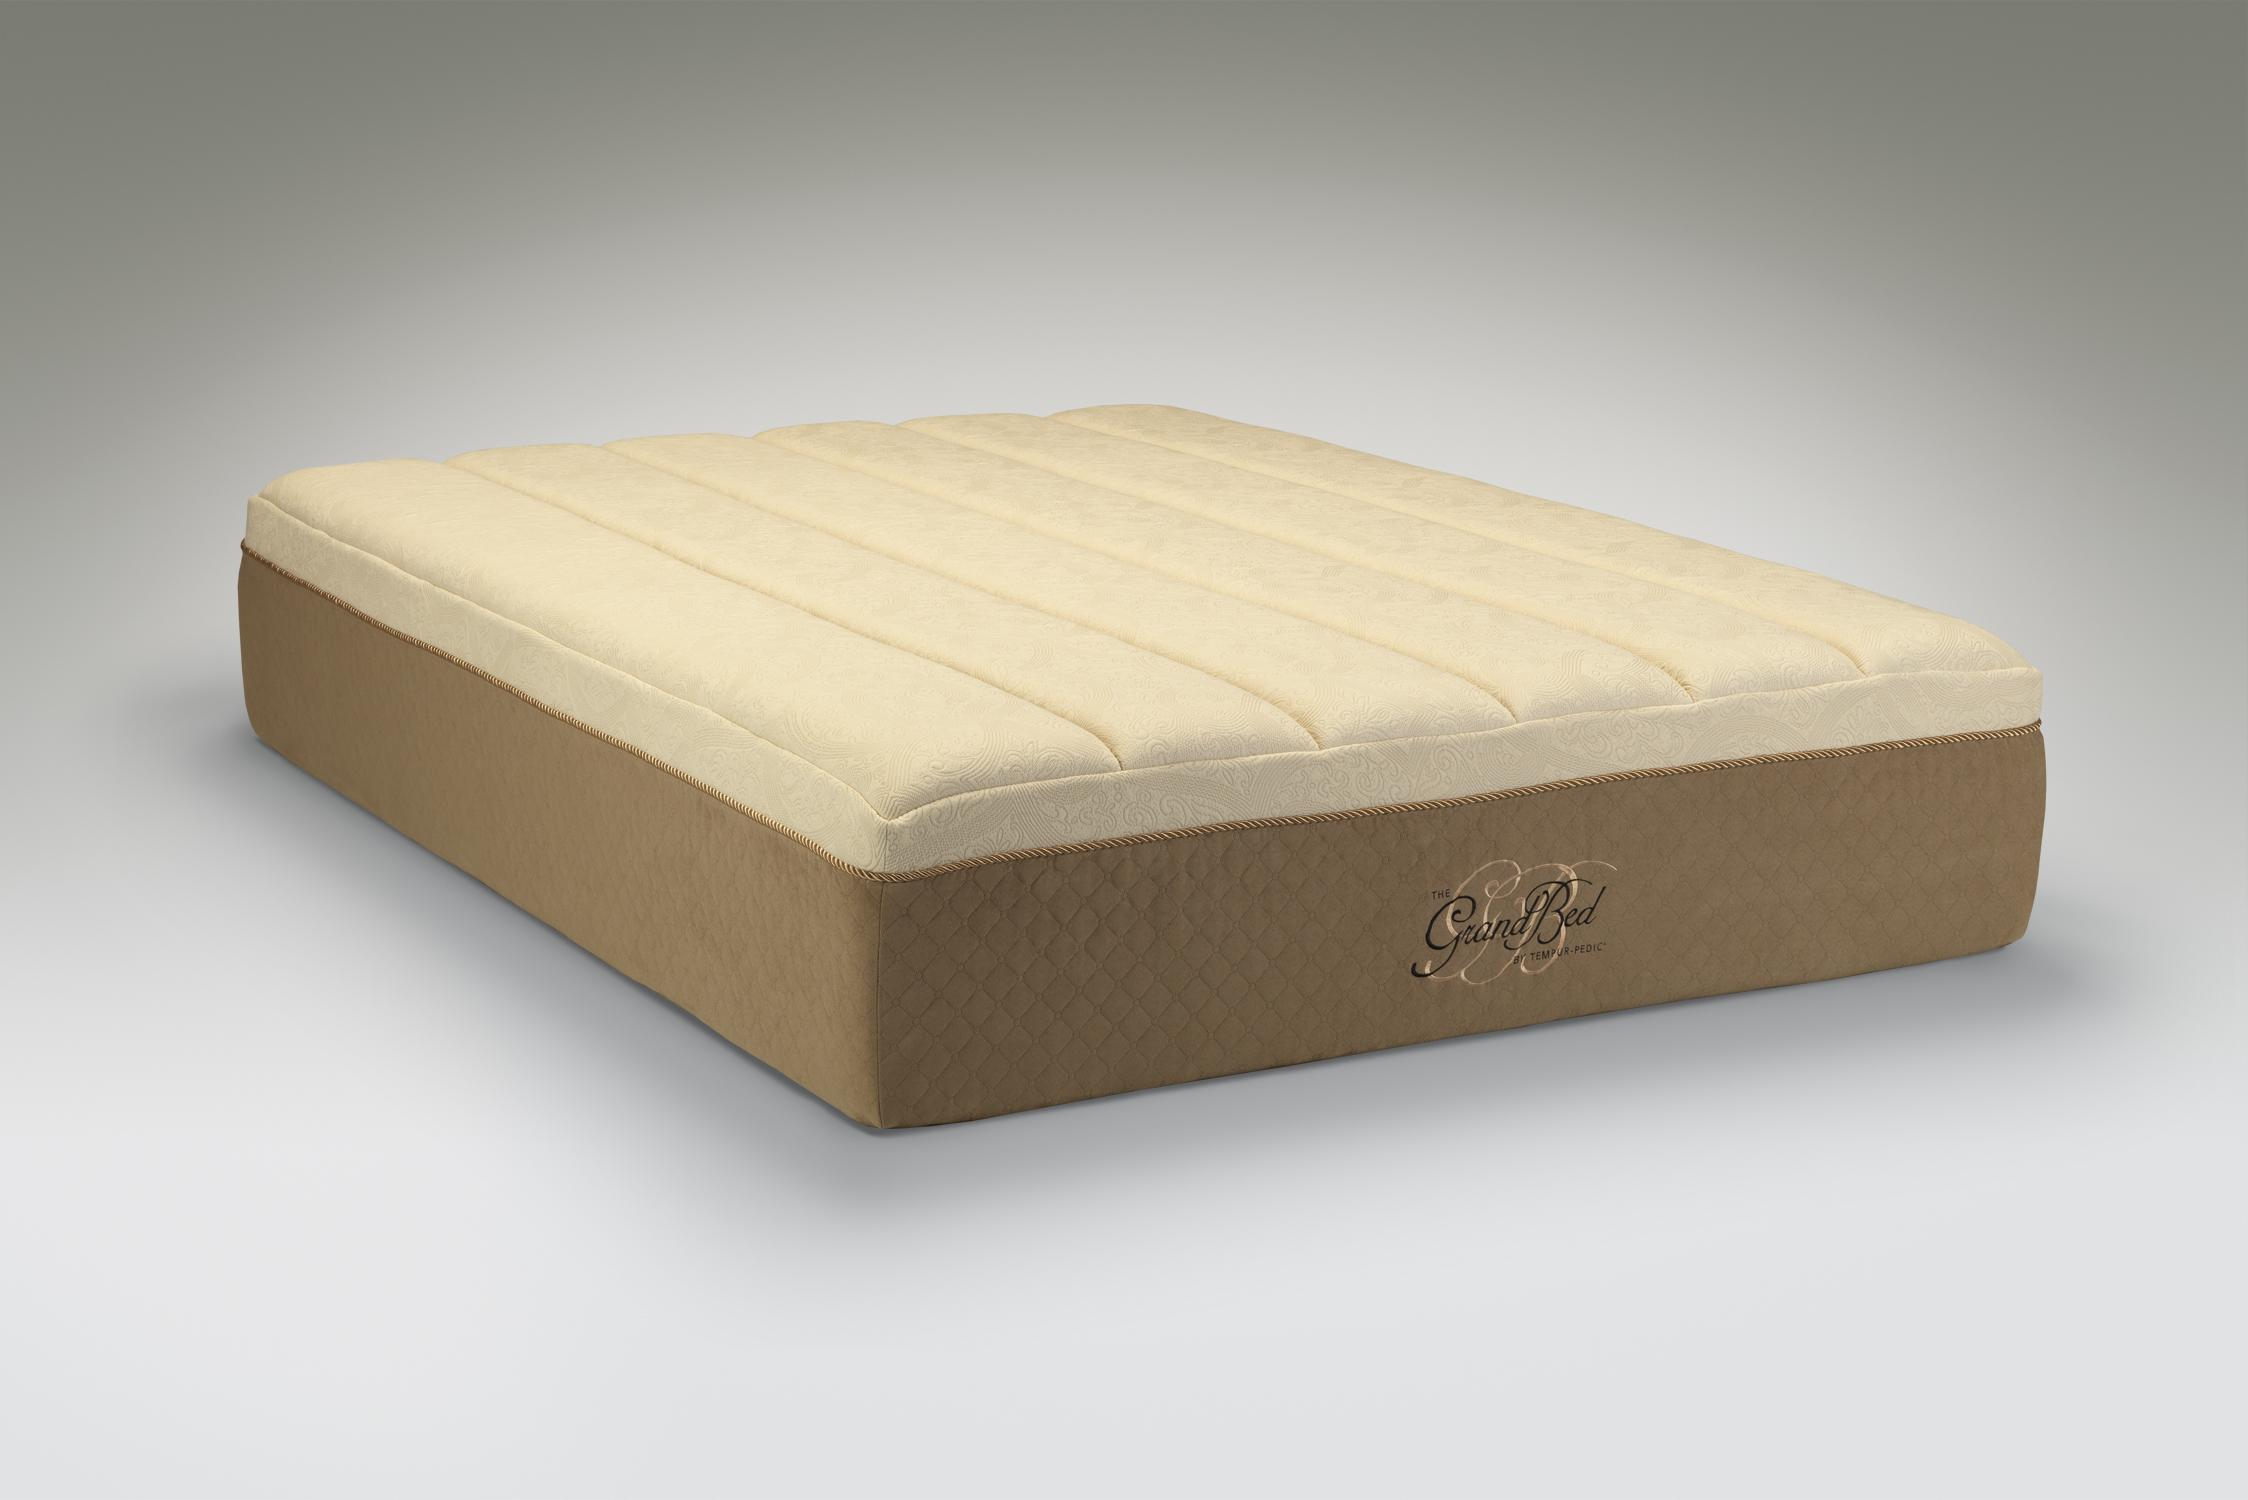 California King Medium Soft Mattress and Tempur Ergo Grand